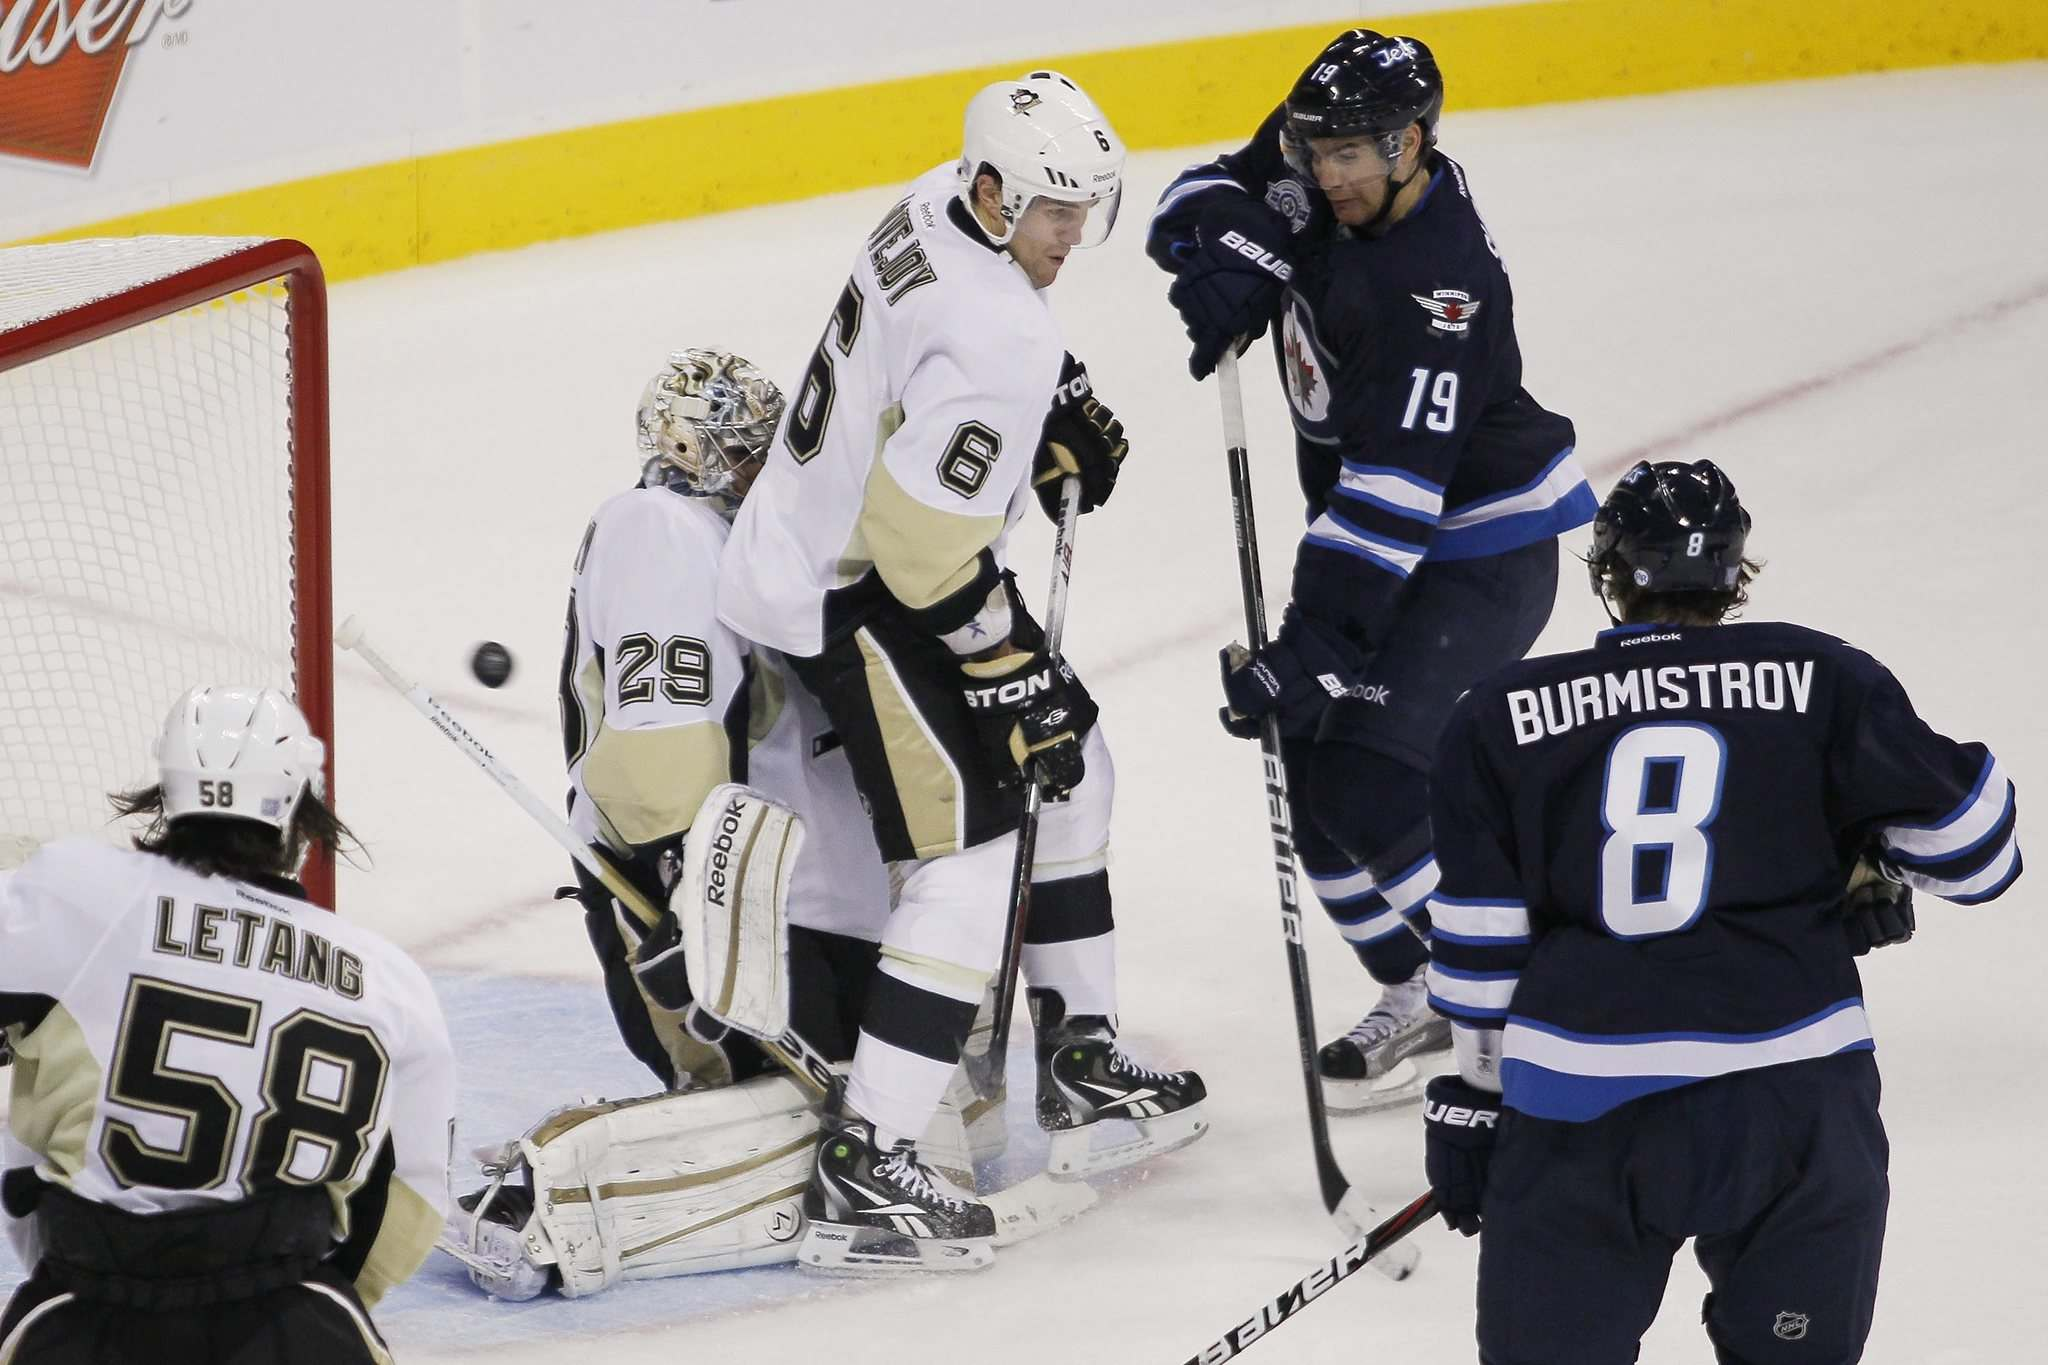 A shot by Winnipeg Jets forward Tanner Glass, not pictured, gets past Pittsburgh Penguins goalie Marc-Andre Fleury and Ben Lovejoy in 2017.